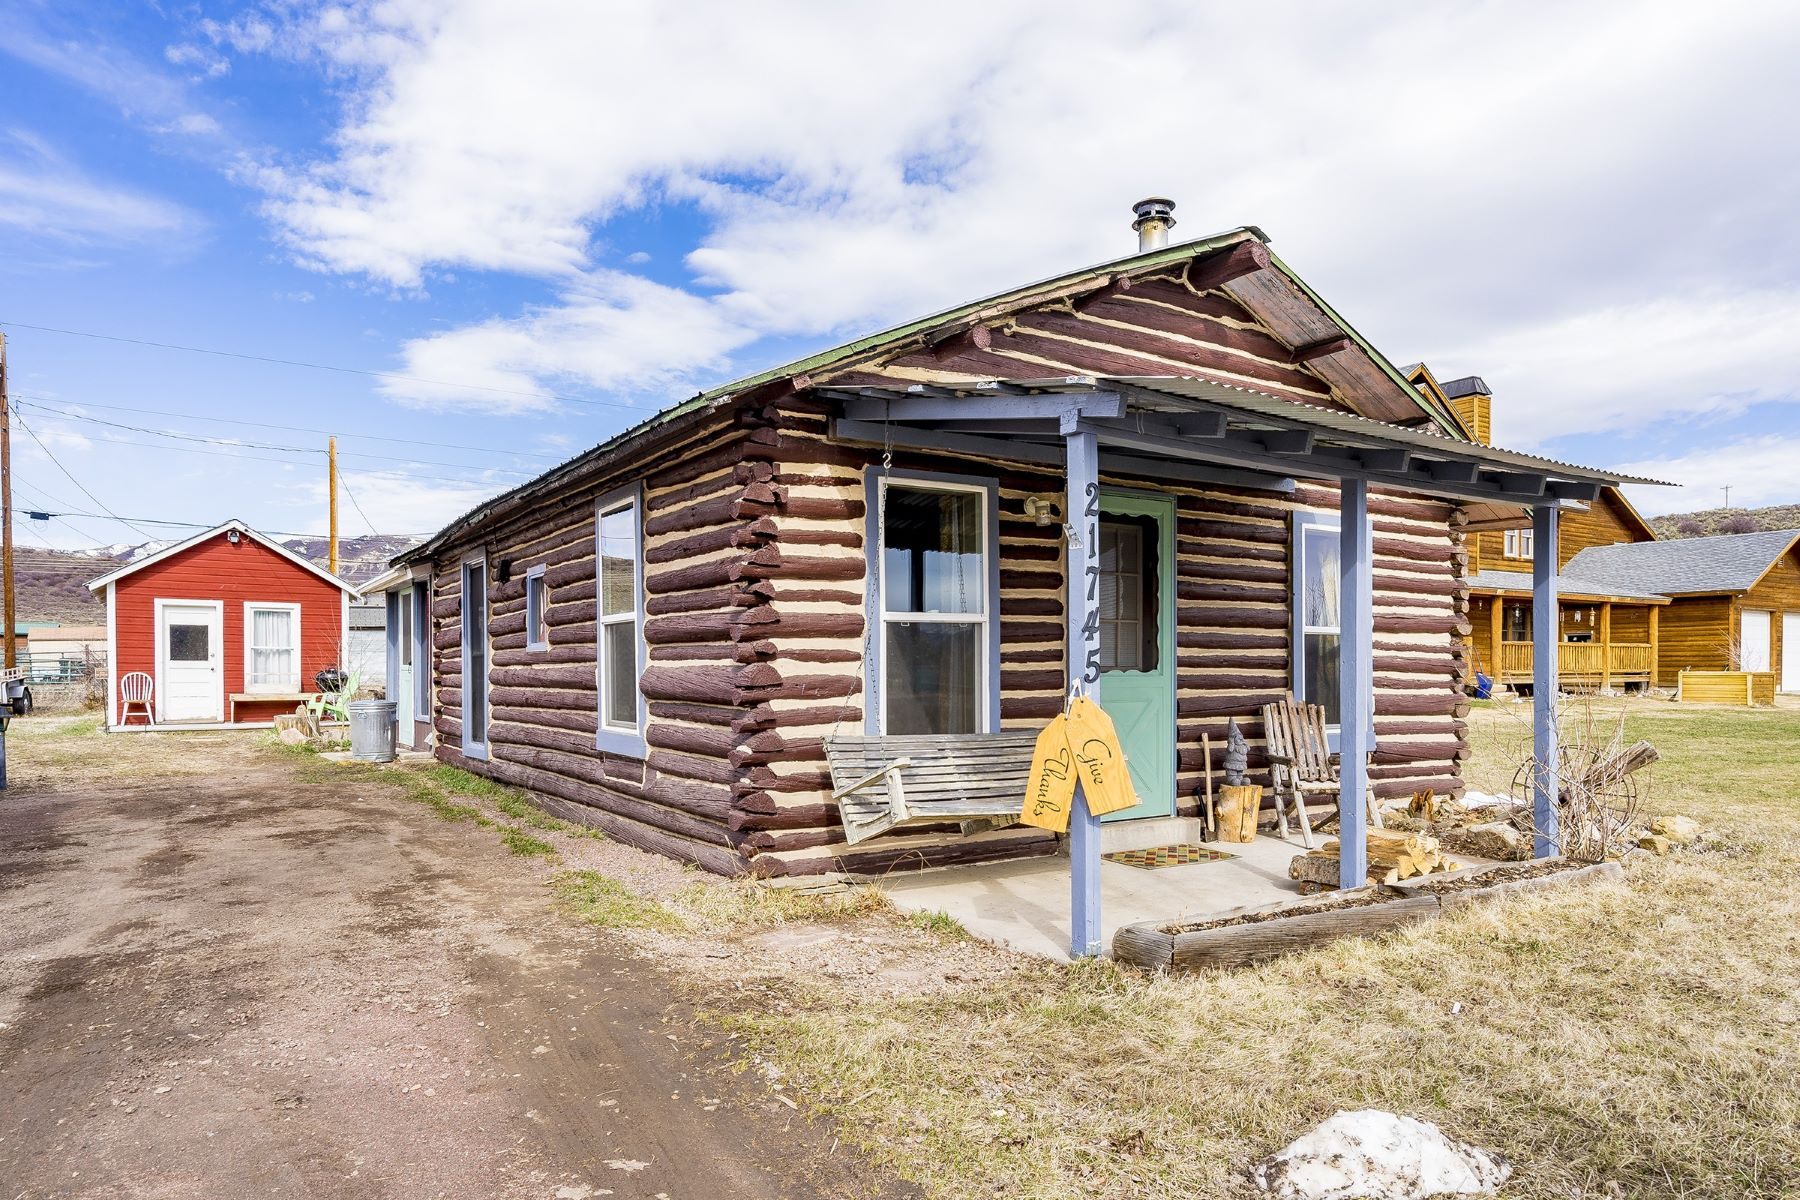 Single Family Home for Active at Log Bungalow in Phippsburg 21745 State Hwy 131 Phippsburg, Colorado 80469 United States